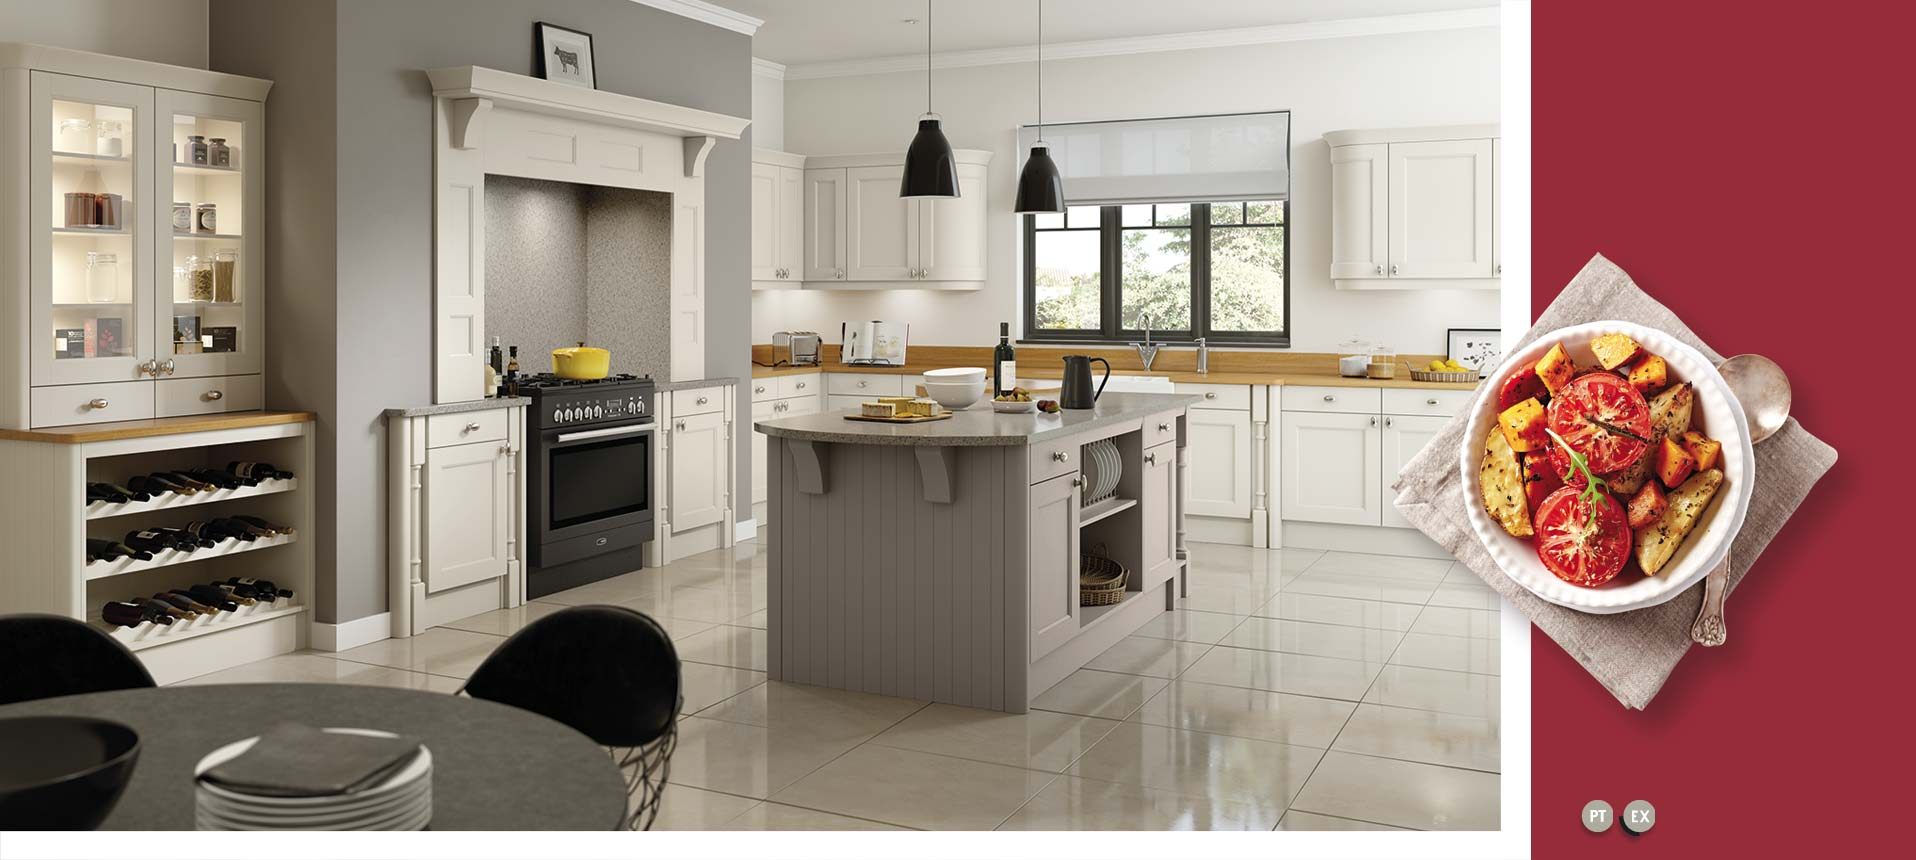 Windsor Mussel Oak Kitchens On Trend Kitchen Collection